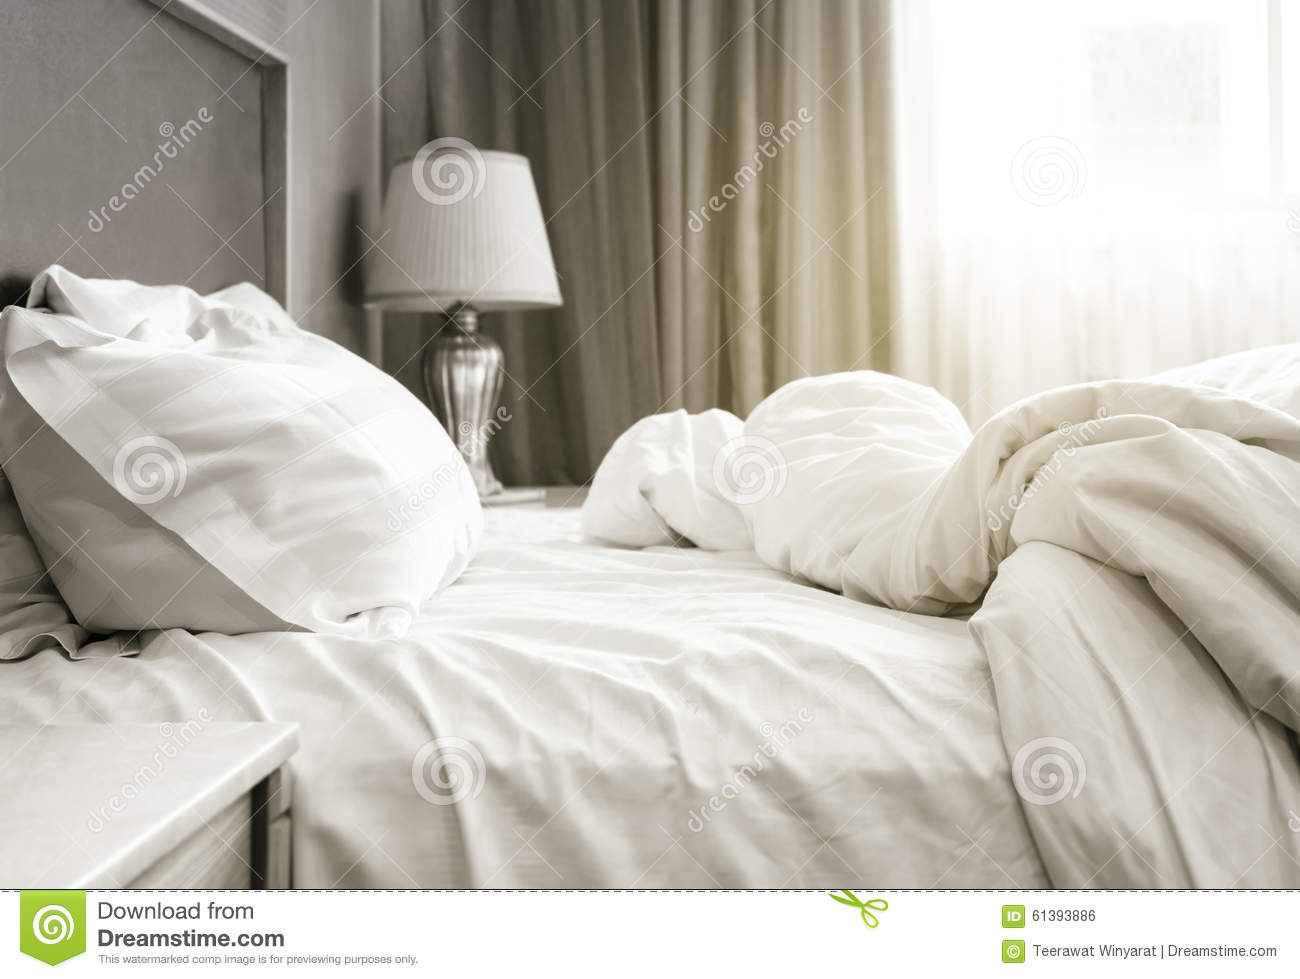 Bed sheet mattress and pillows messed up Bedroom